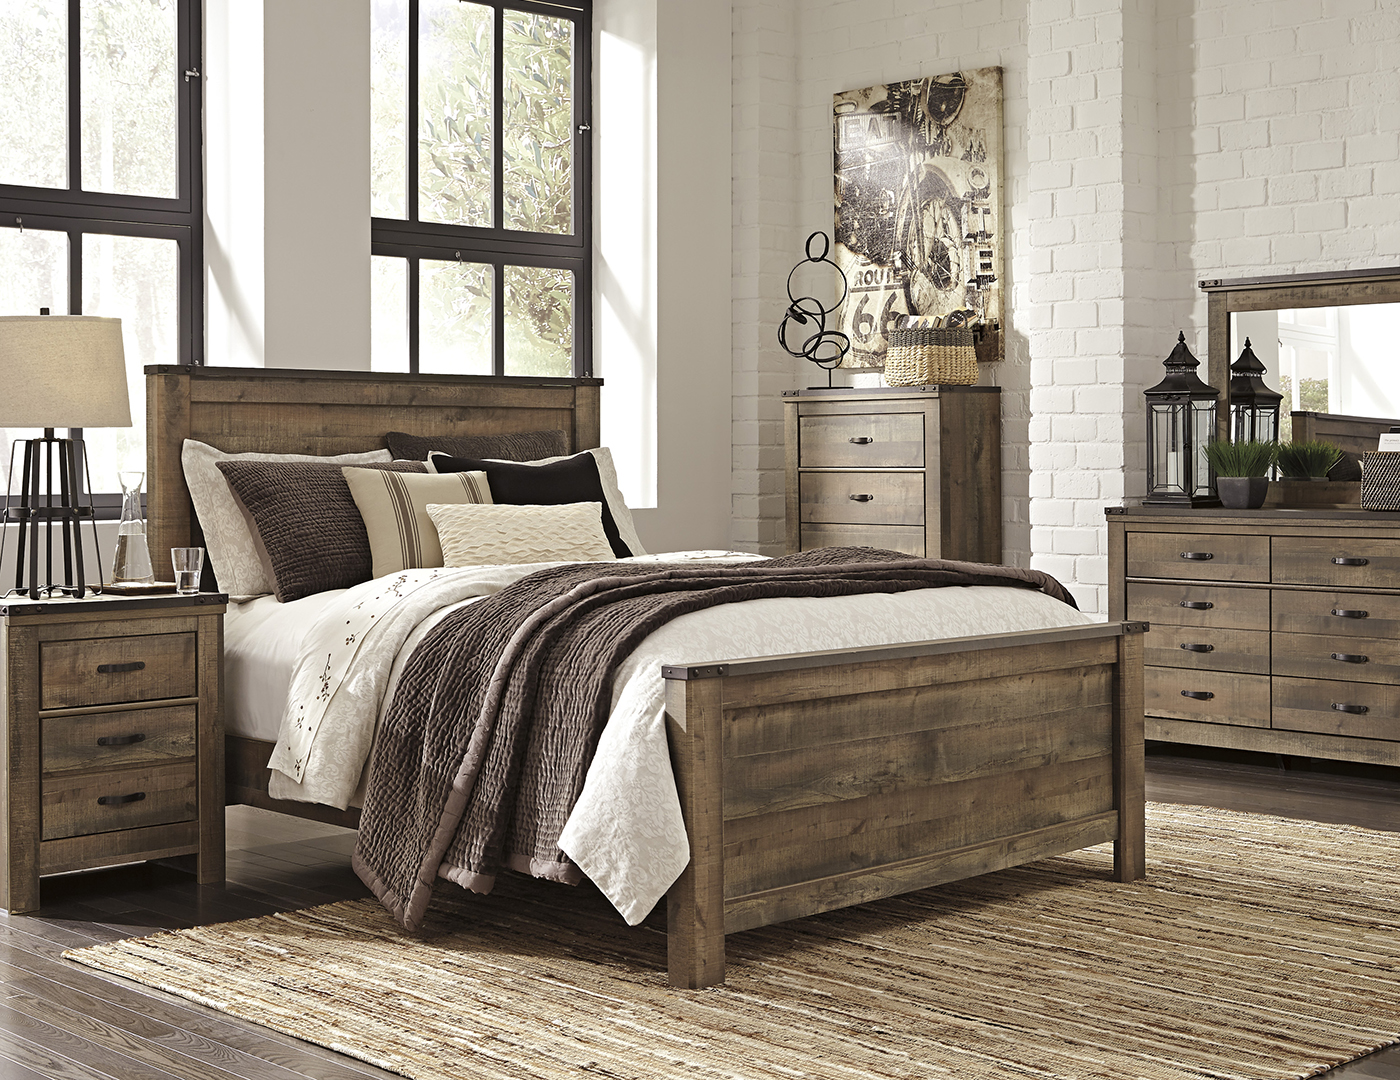 Captivating King Bedroom Set